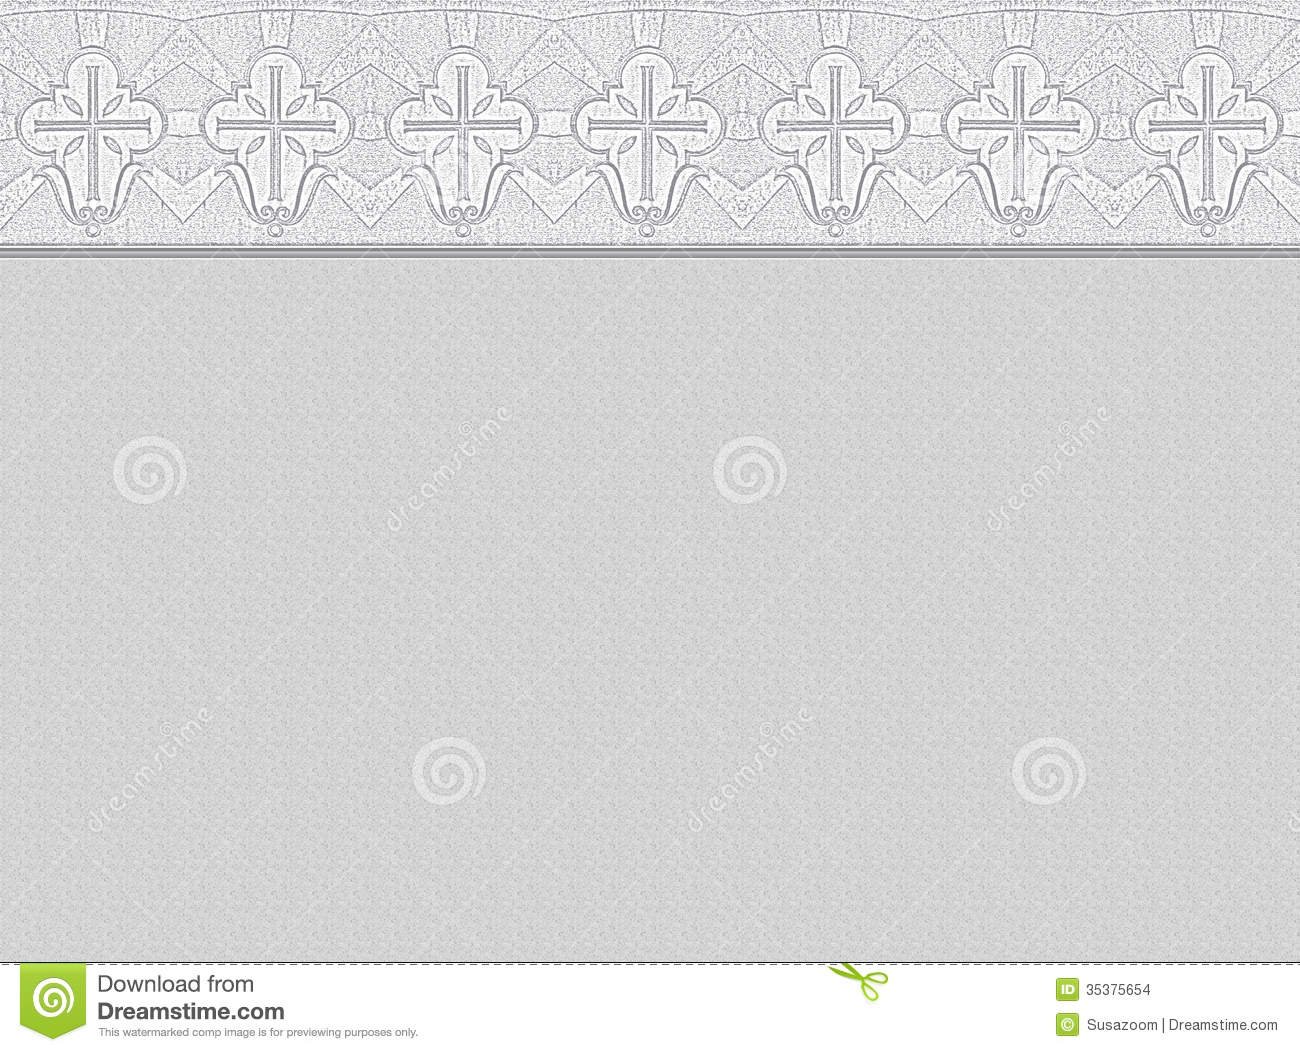 Light Grey Background With Ornamental Border Made Of Christian Cross